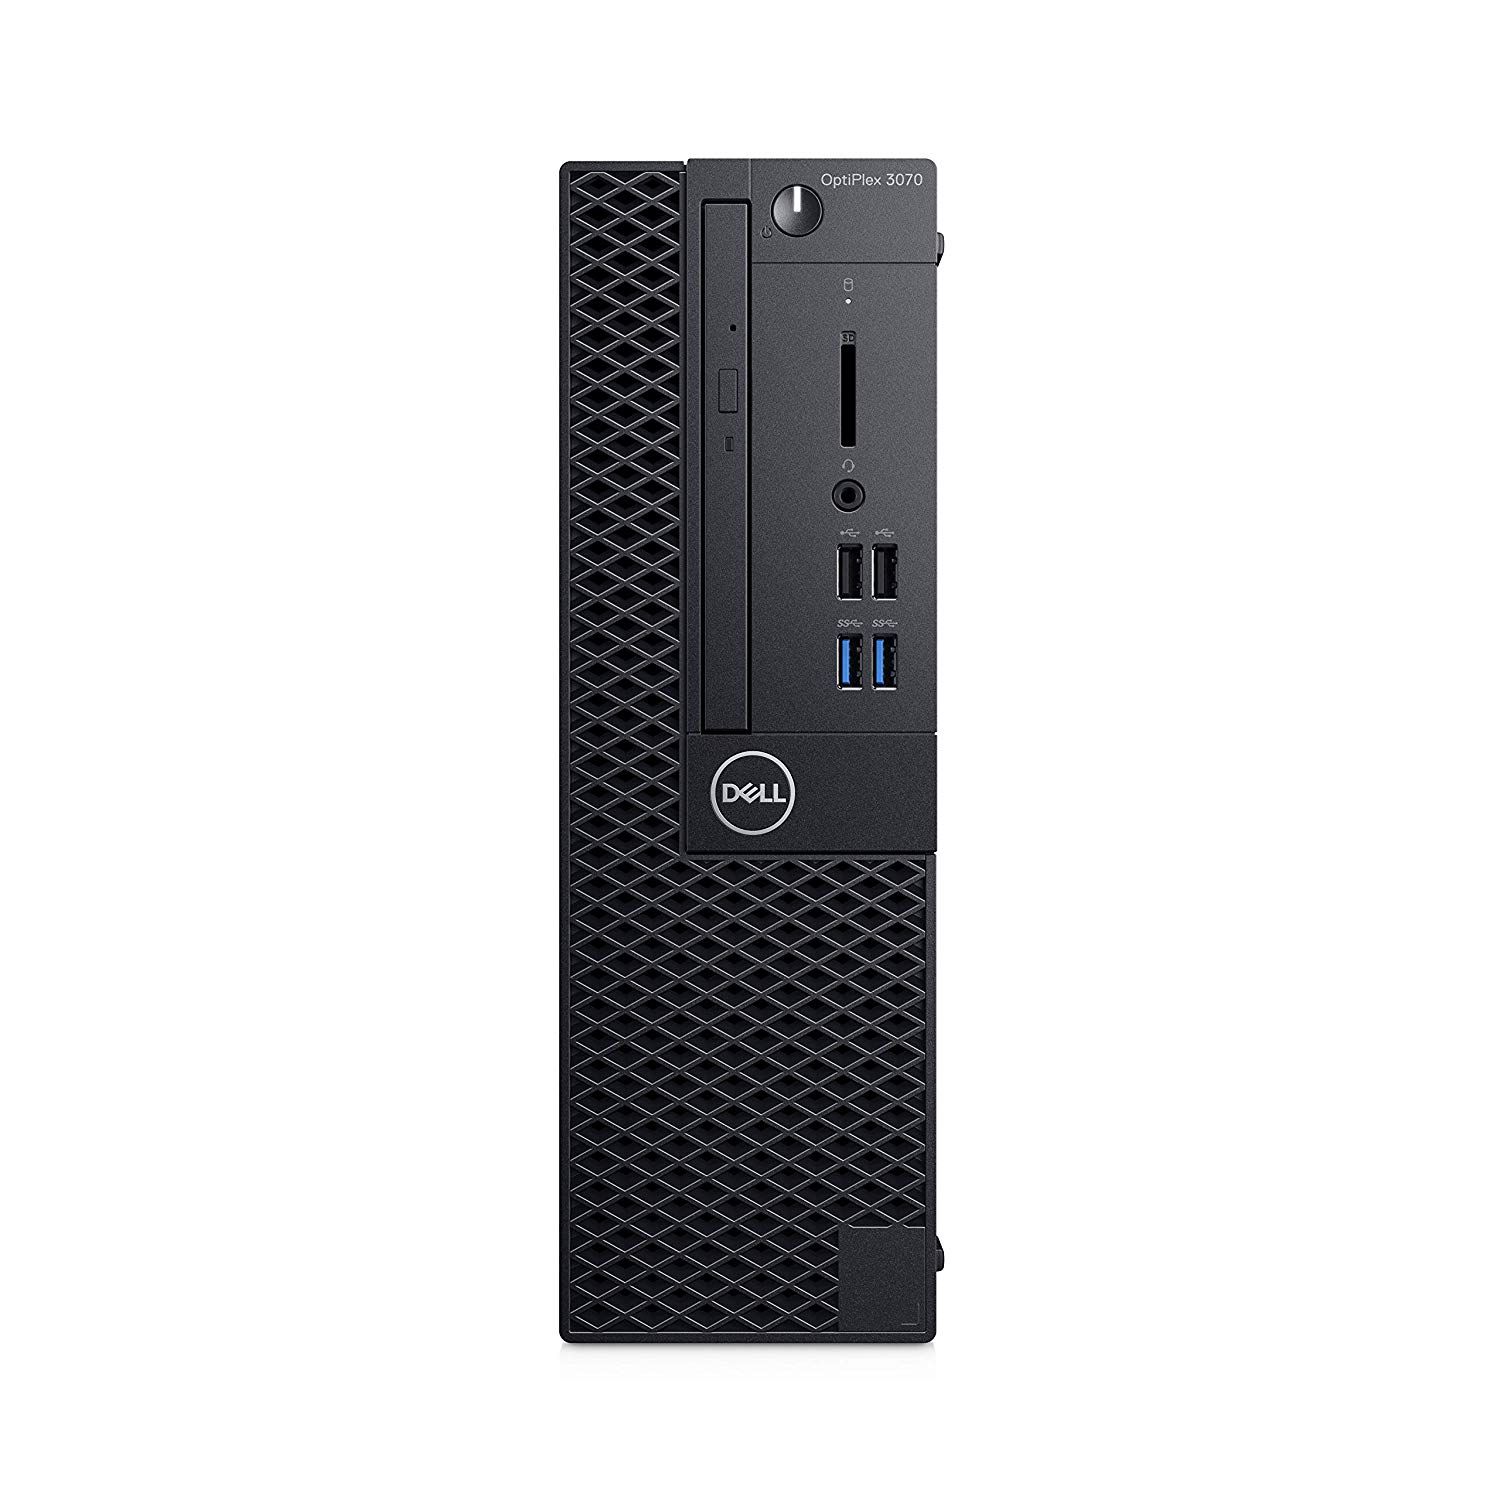 Dell Opti 3070 i5 8GB 128GB SSD SFF PC